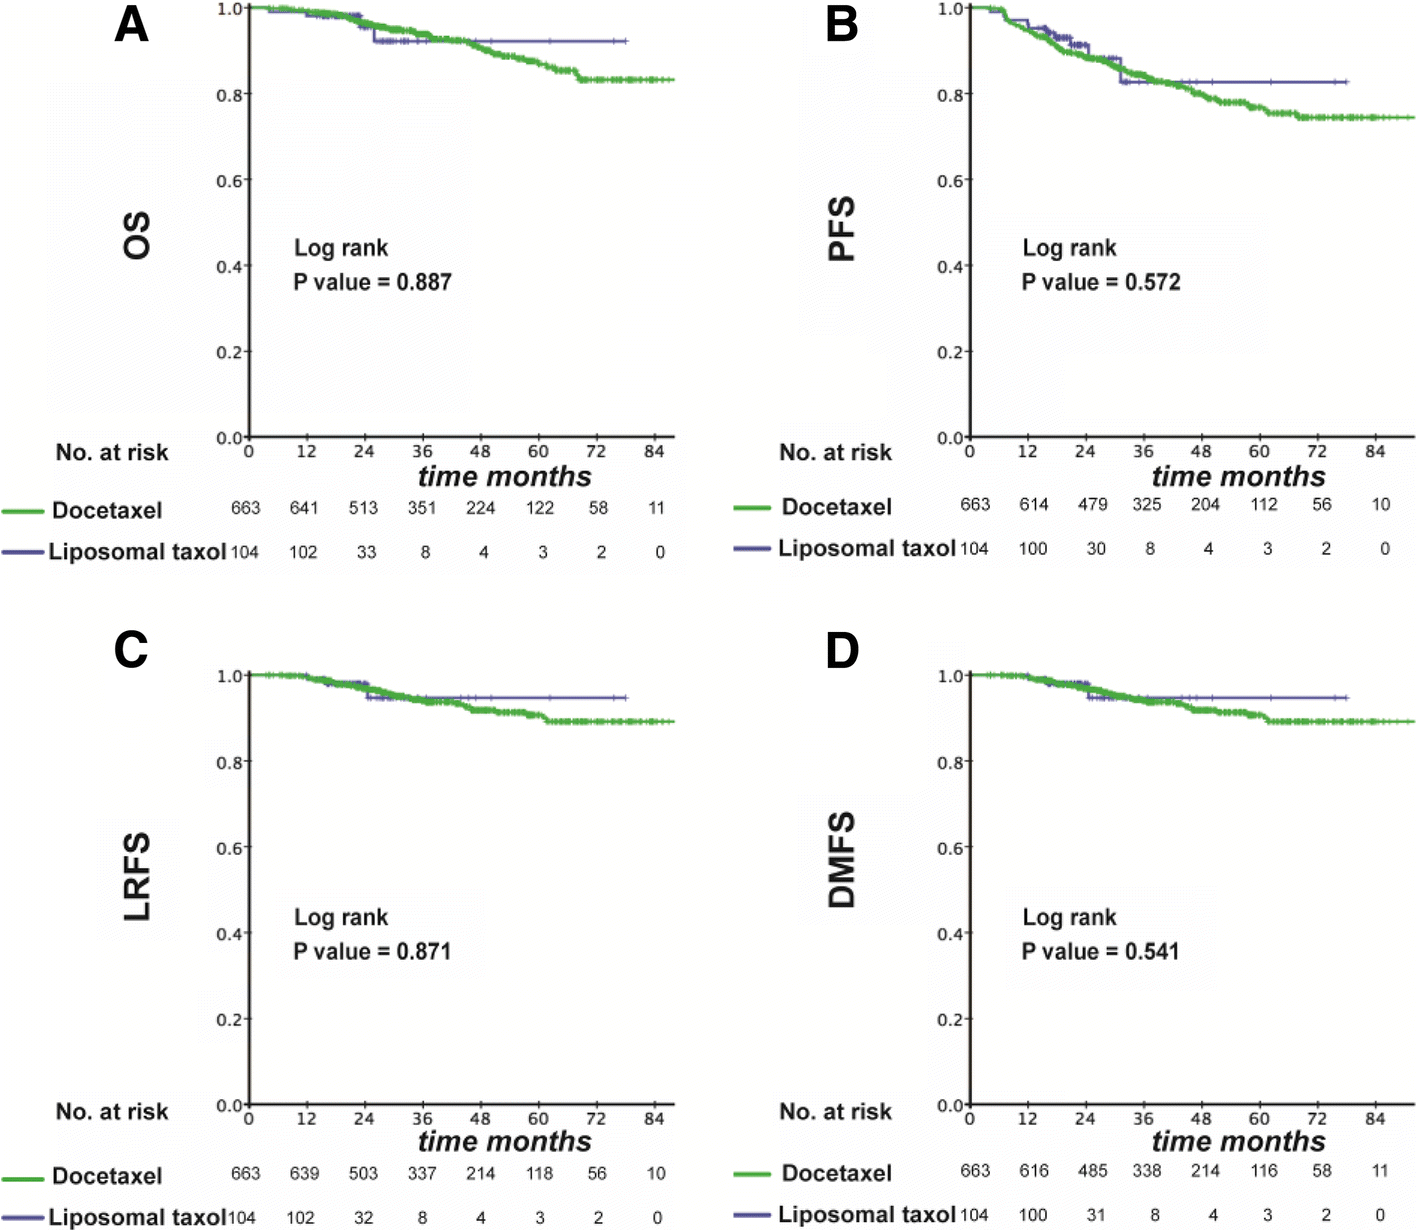 Liposomal paclitaxel versus docetaxel in induction chemotherapy